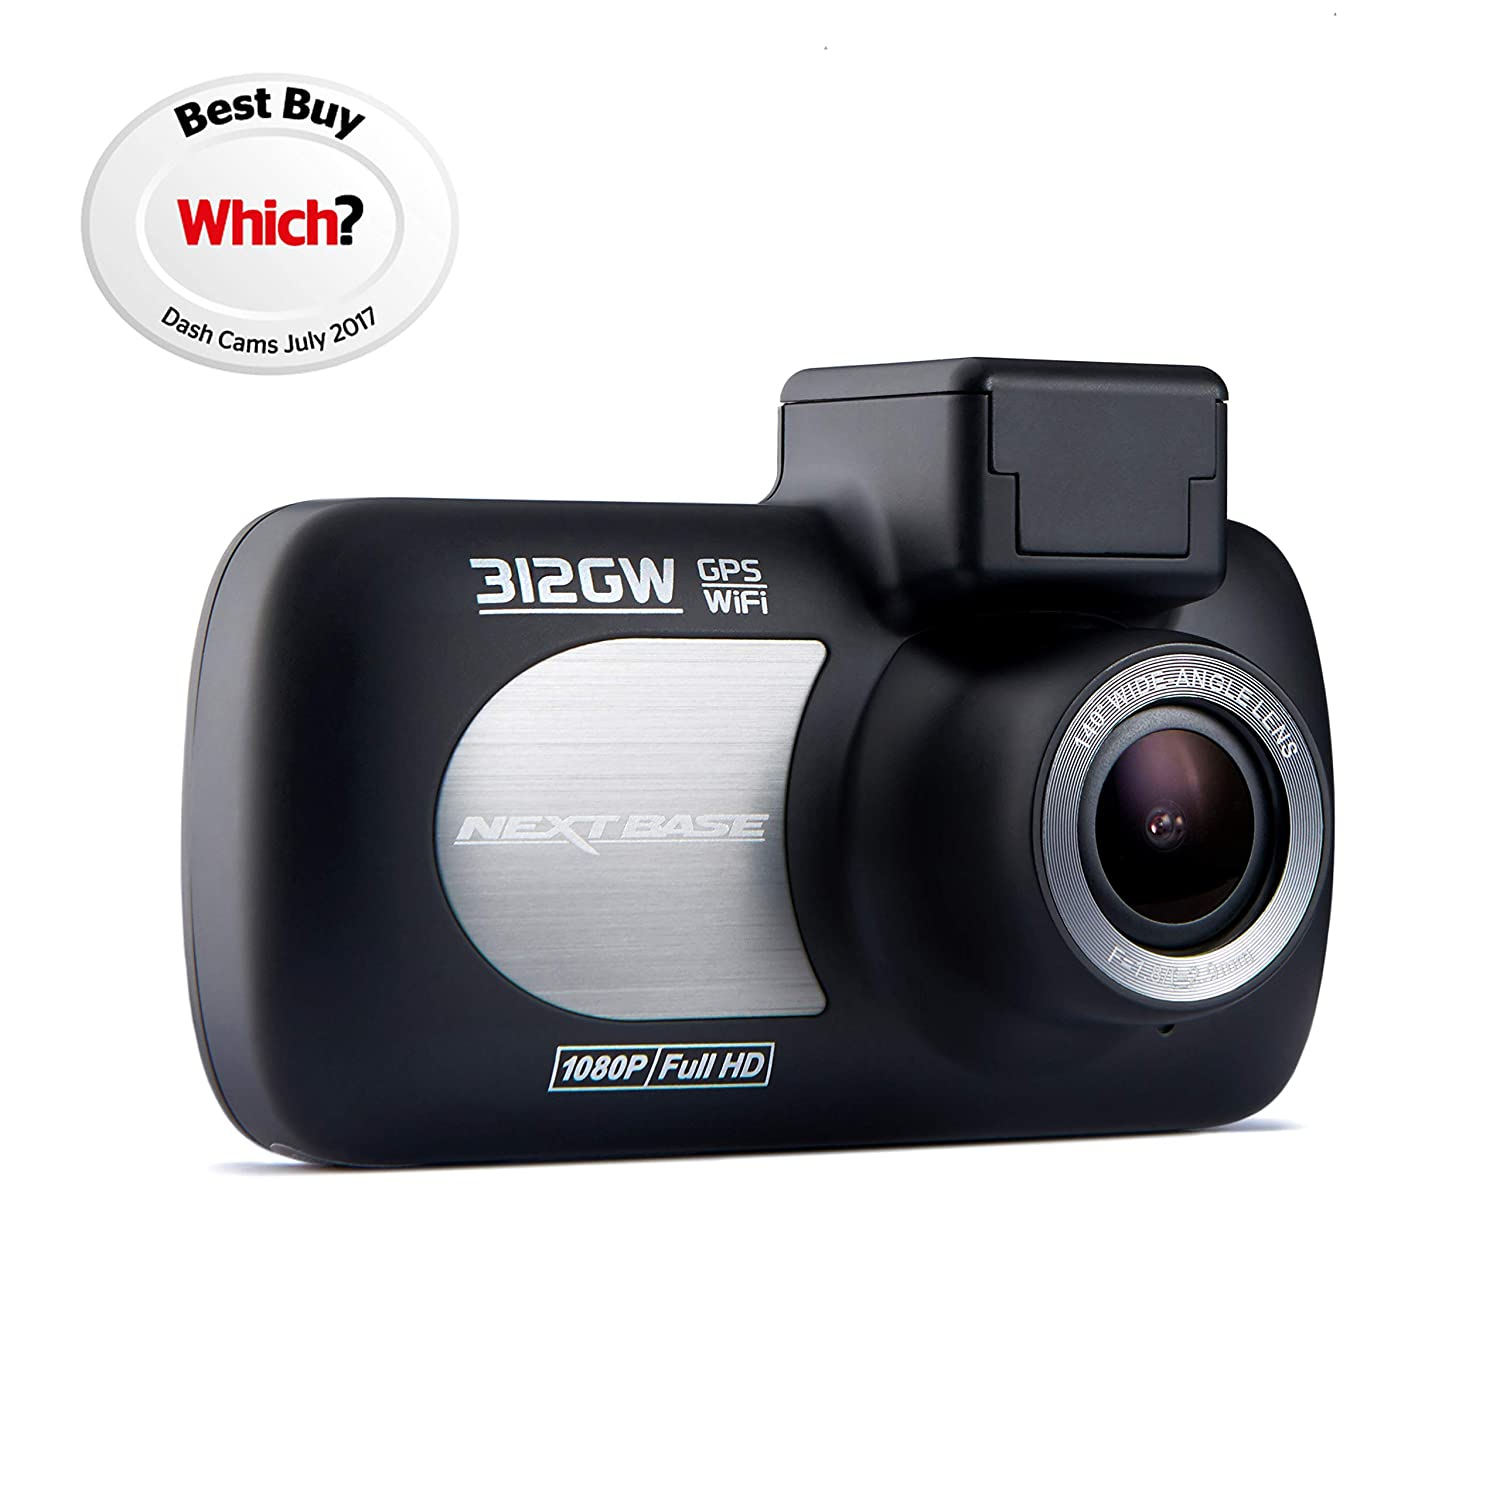 Nextbase 512GW 1440p QUAD HD In-Car Dash Cam and 512GWRC Rear Cam Front and Back Recording, with Wi-Fi, GPS, Anti-Glare Polarising filter - Black